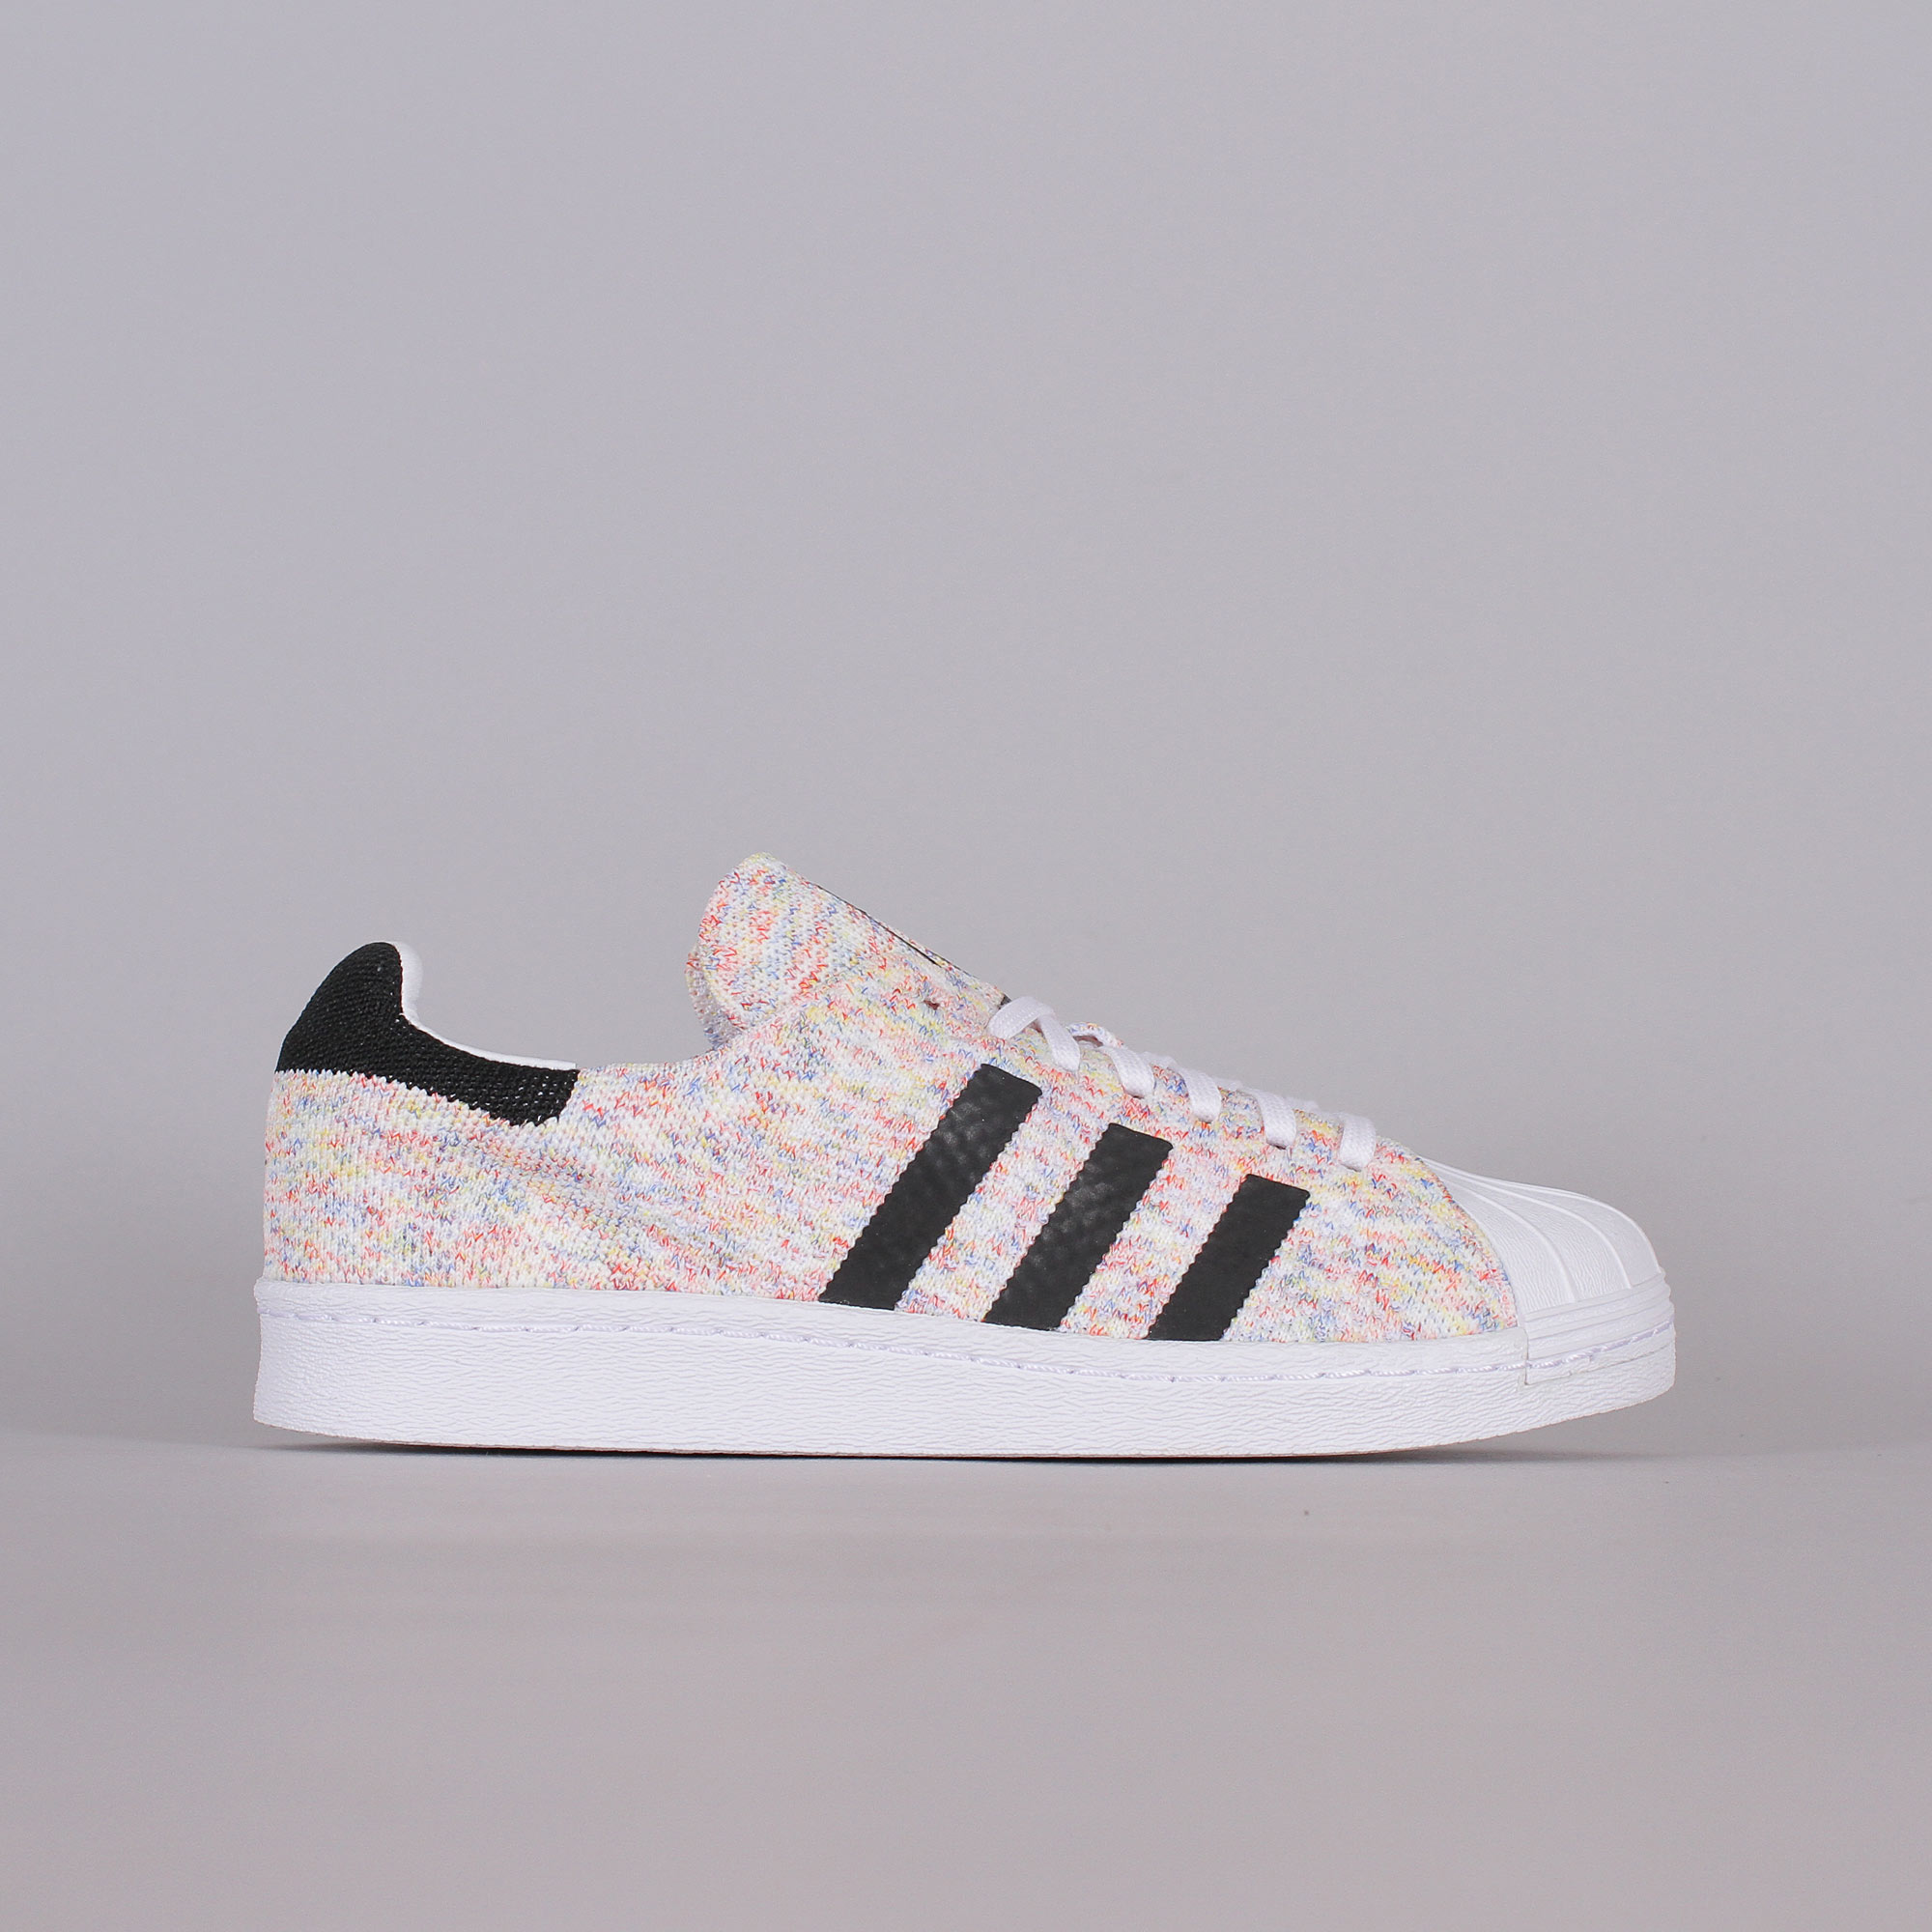 shoes, adidas, multicolors, sneakers, skateboard, street